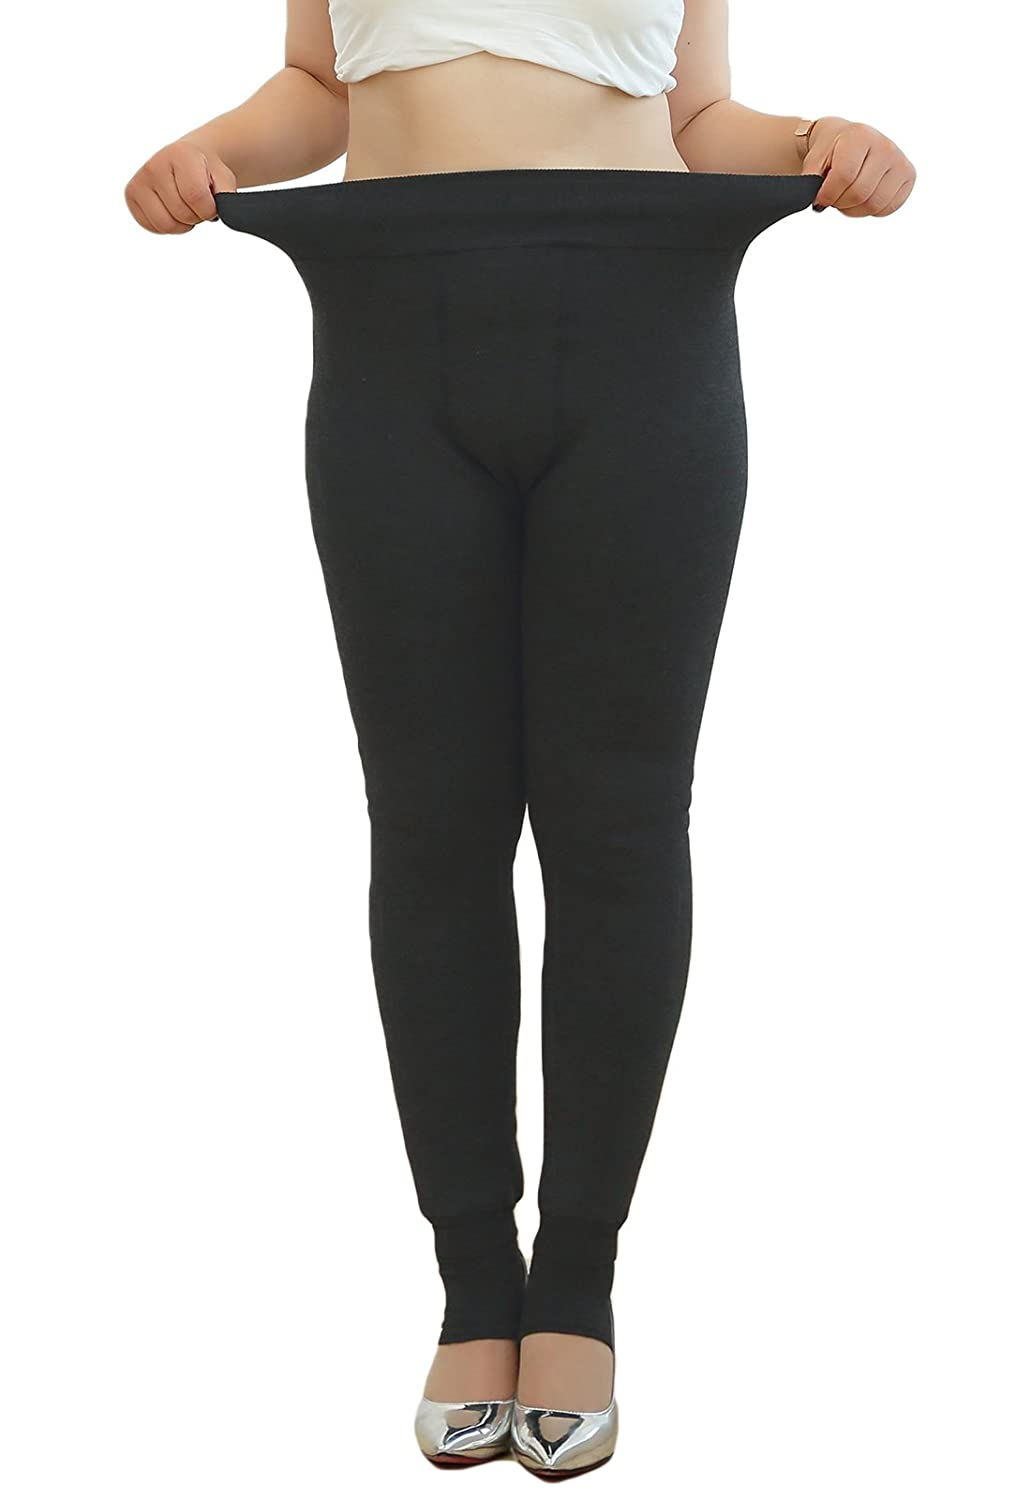 675732a10e5 American Trends Womens Fleece Lined Thermal Leggings Winter Warm Thick  Stirrupped Pants